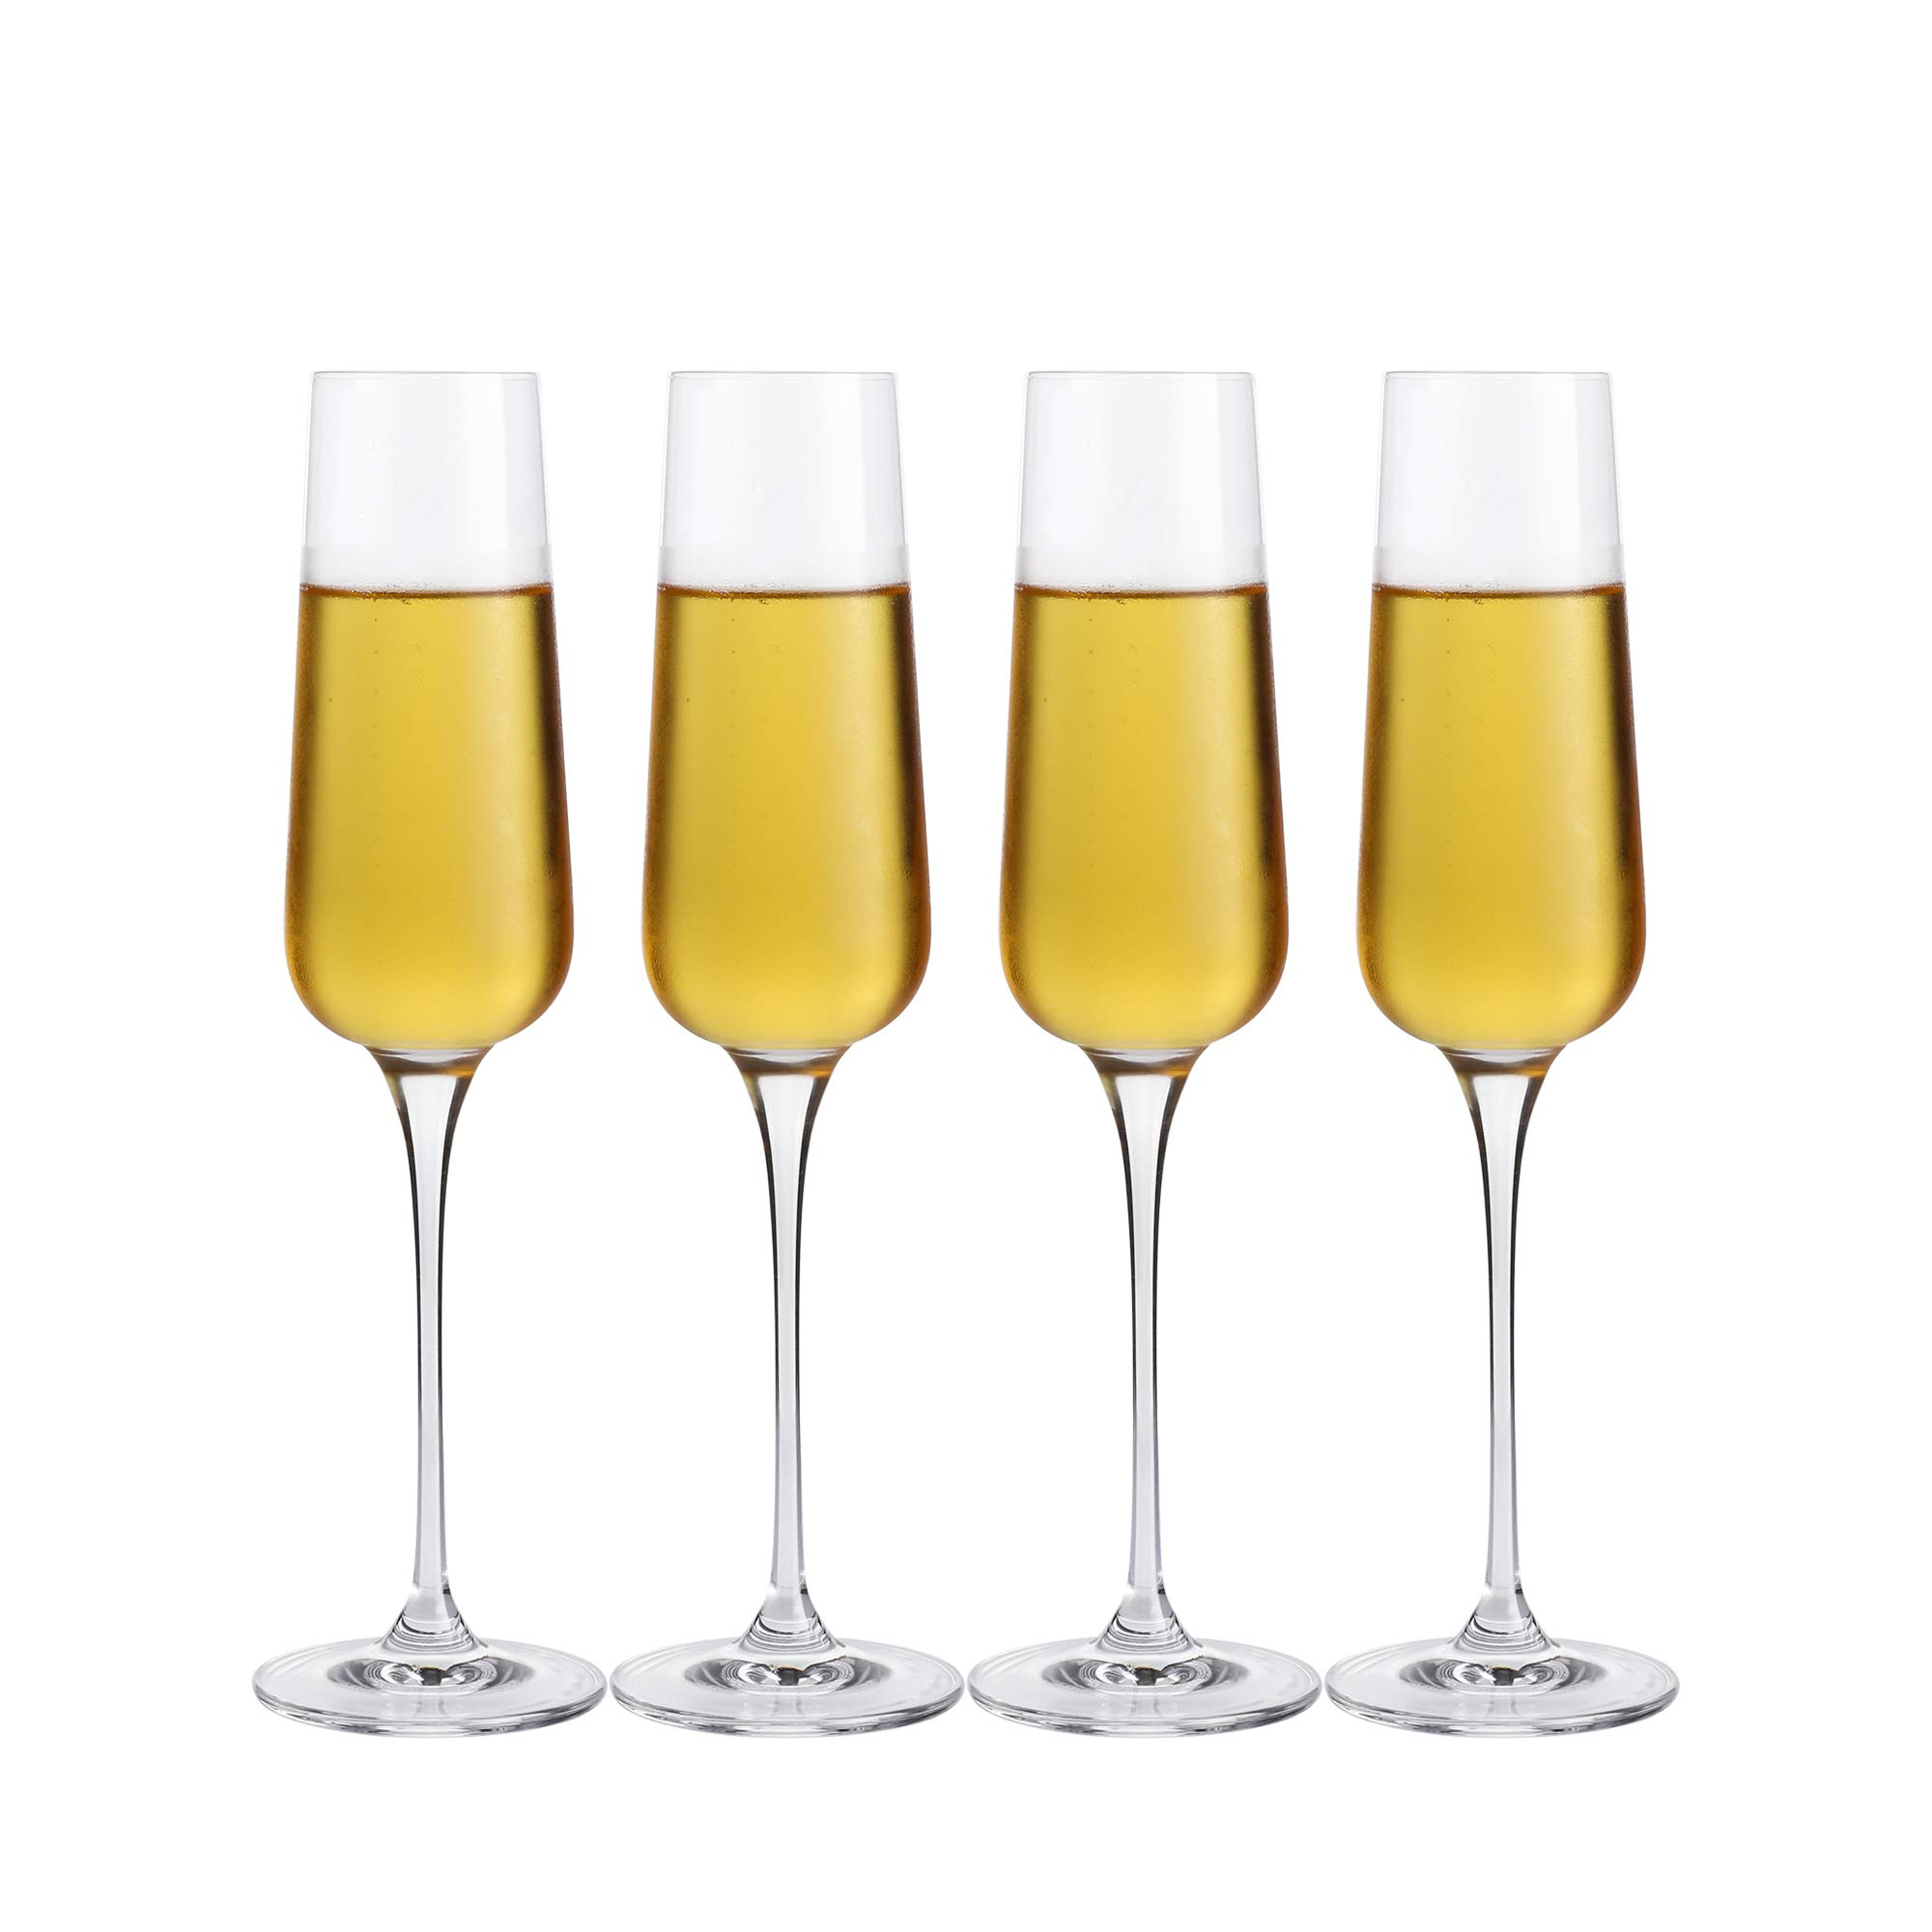 Crystal Champagne Flutes Glasses Set of 4 - Machine Made Glass 100% Lead Free 8 Ounce